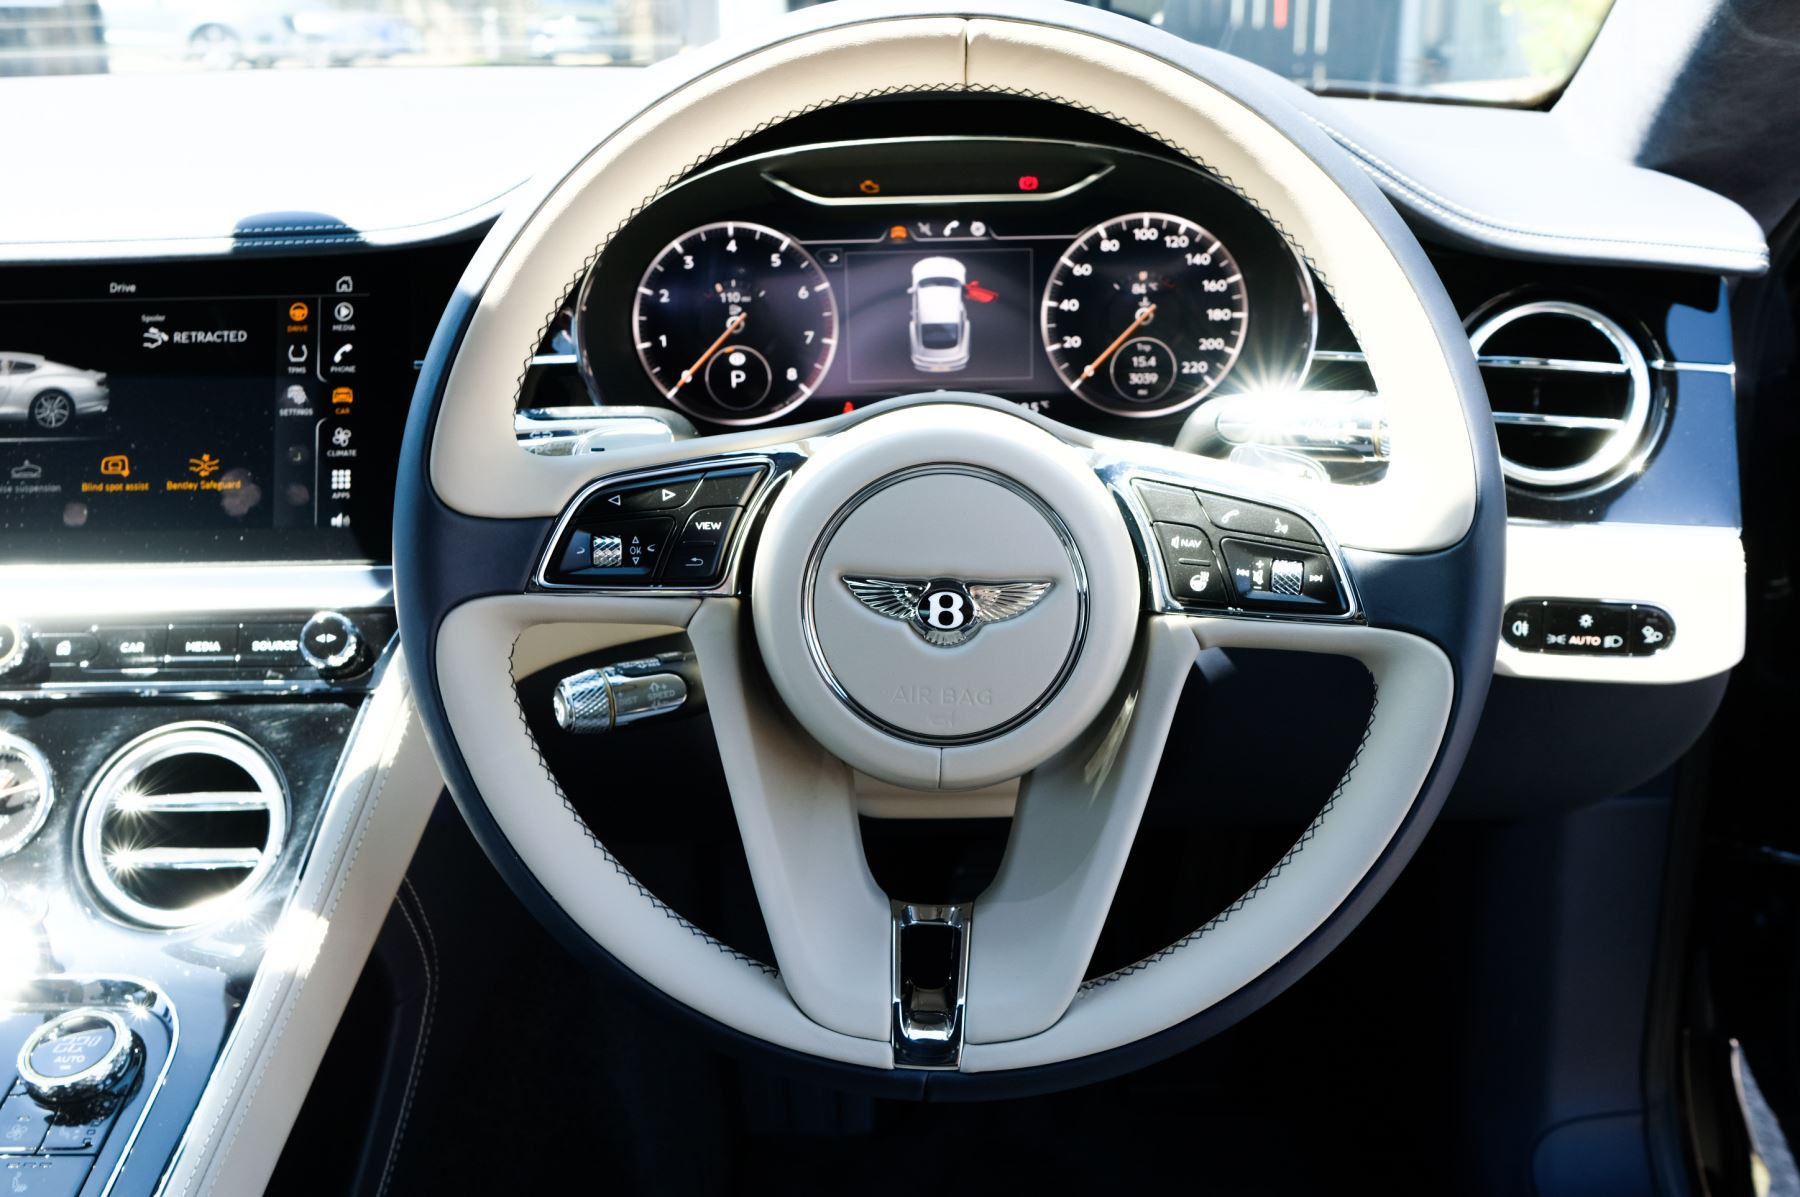 Bentley Continental GT 6.0 W12 - CITY + TOURING SPECIFICATION image 14